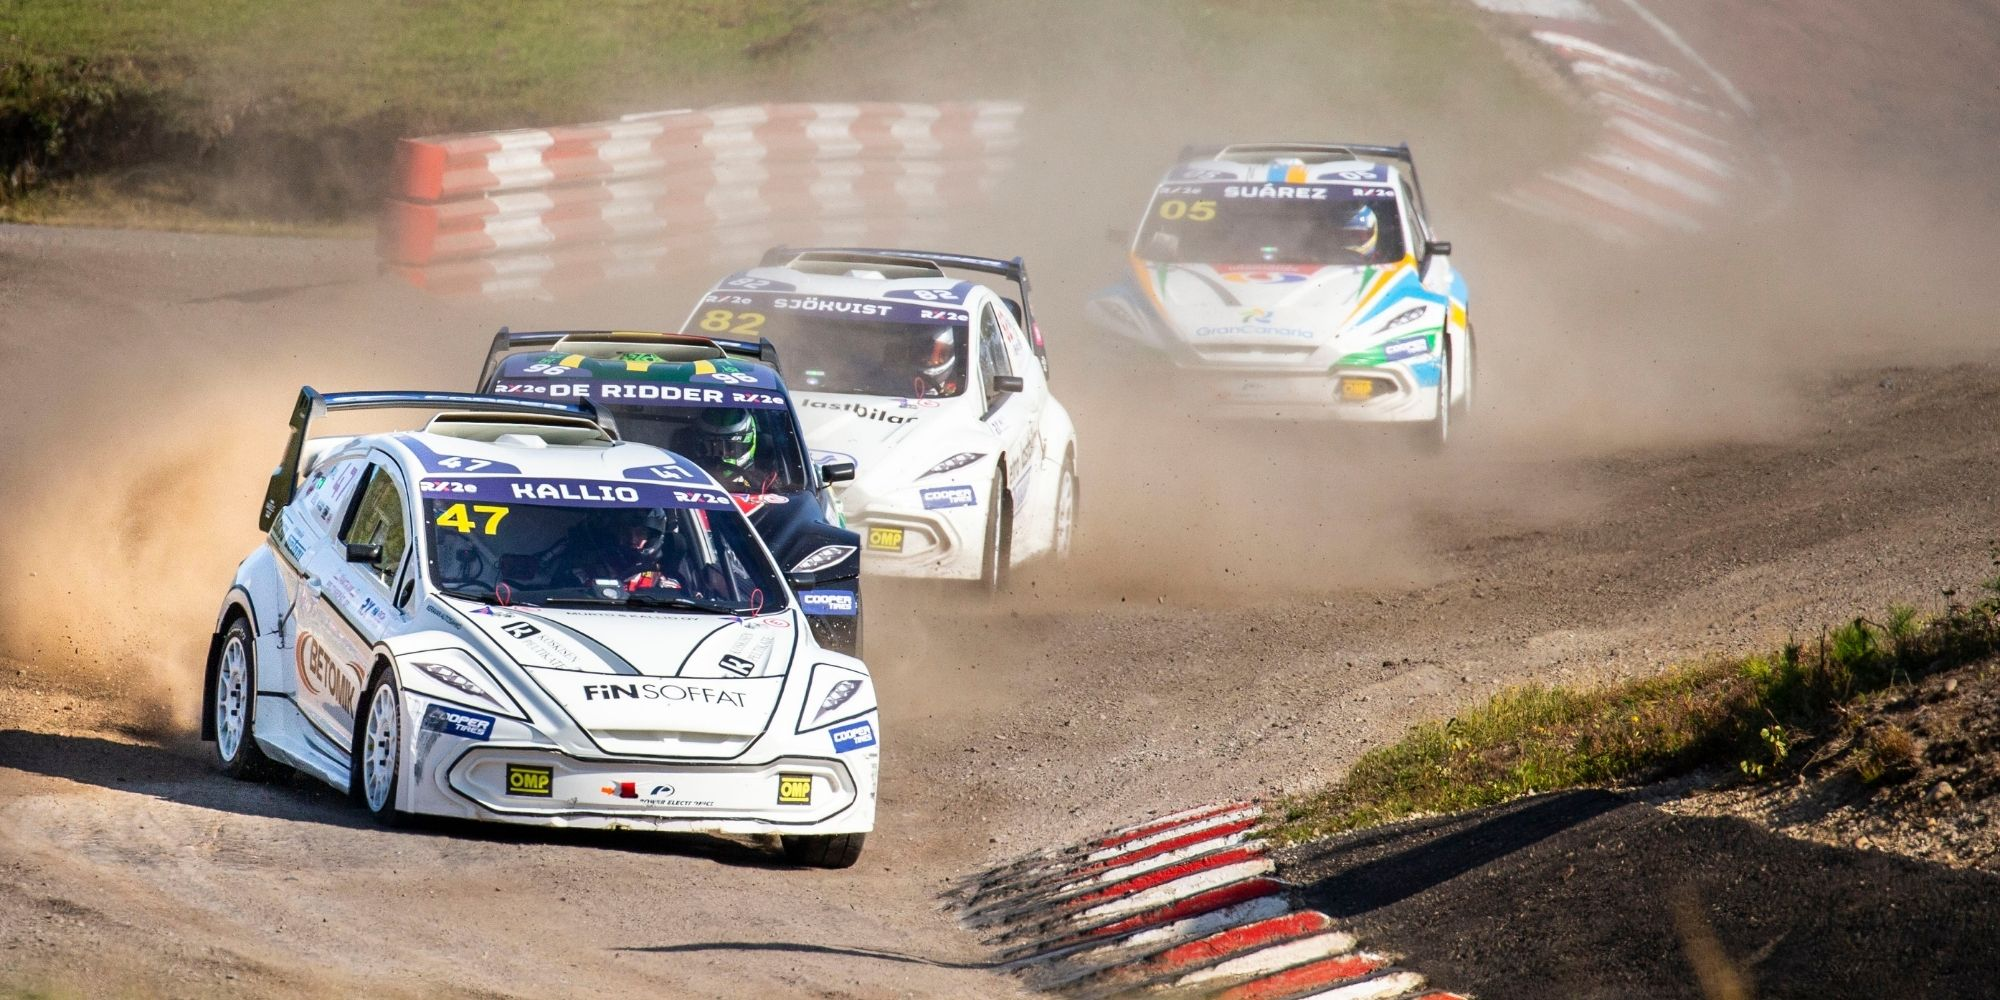 Kallio takes the spoils at Höljes in thrilling showdown with McConnell as title battle heats up